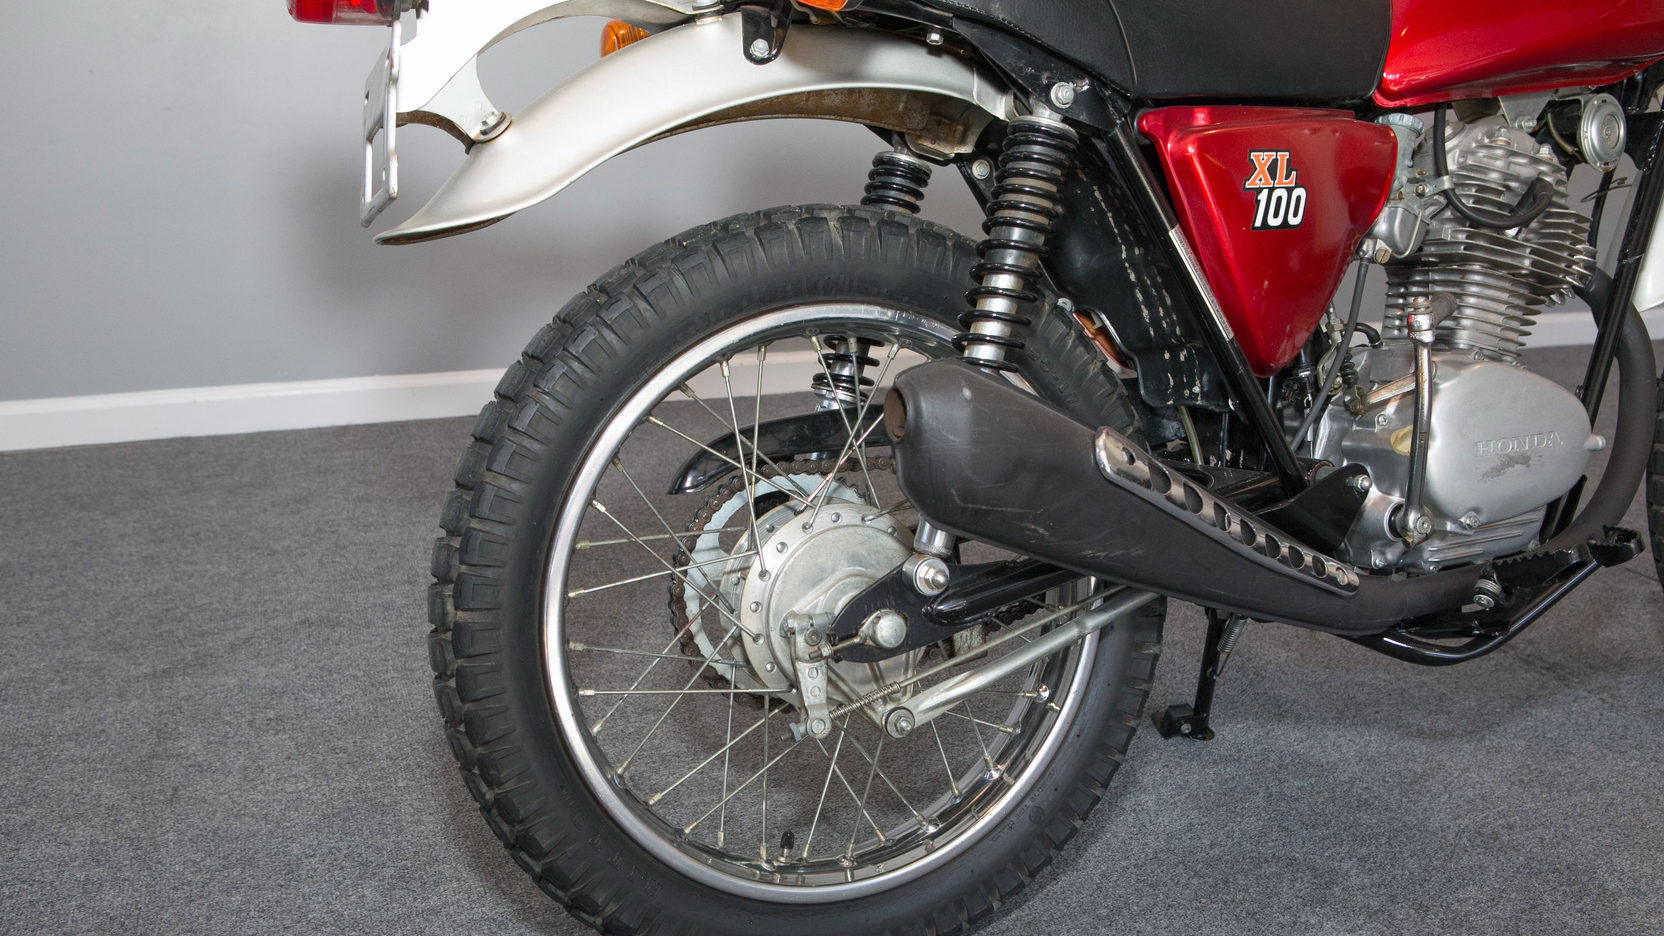 1975 Honda XL100 Enduro | F27 | Chicago Motorcycles 2016